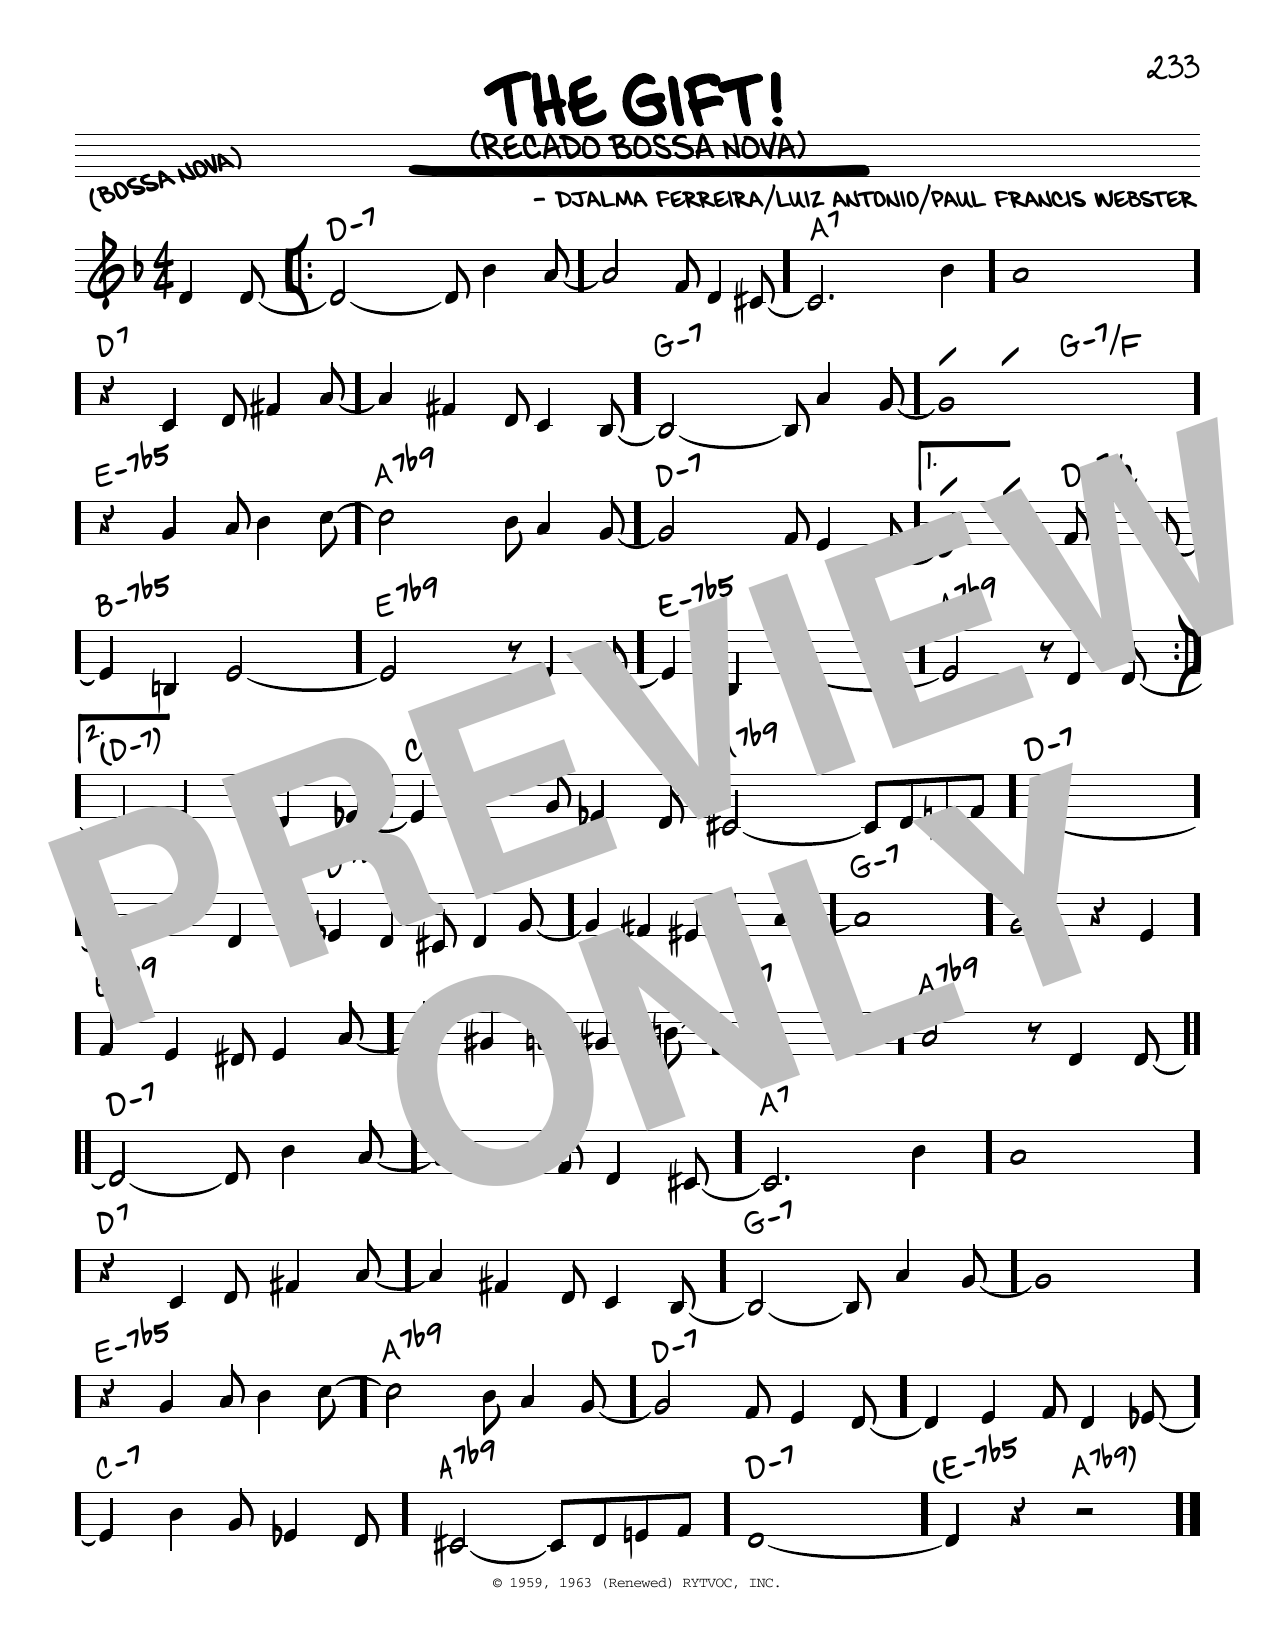 The Gift Recado Bossa Nova Sheet Music Direct